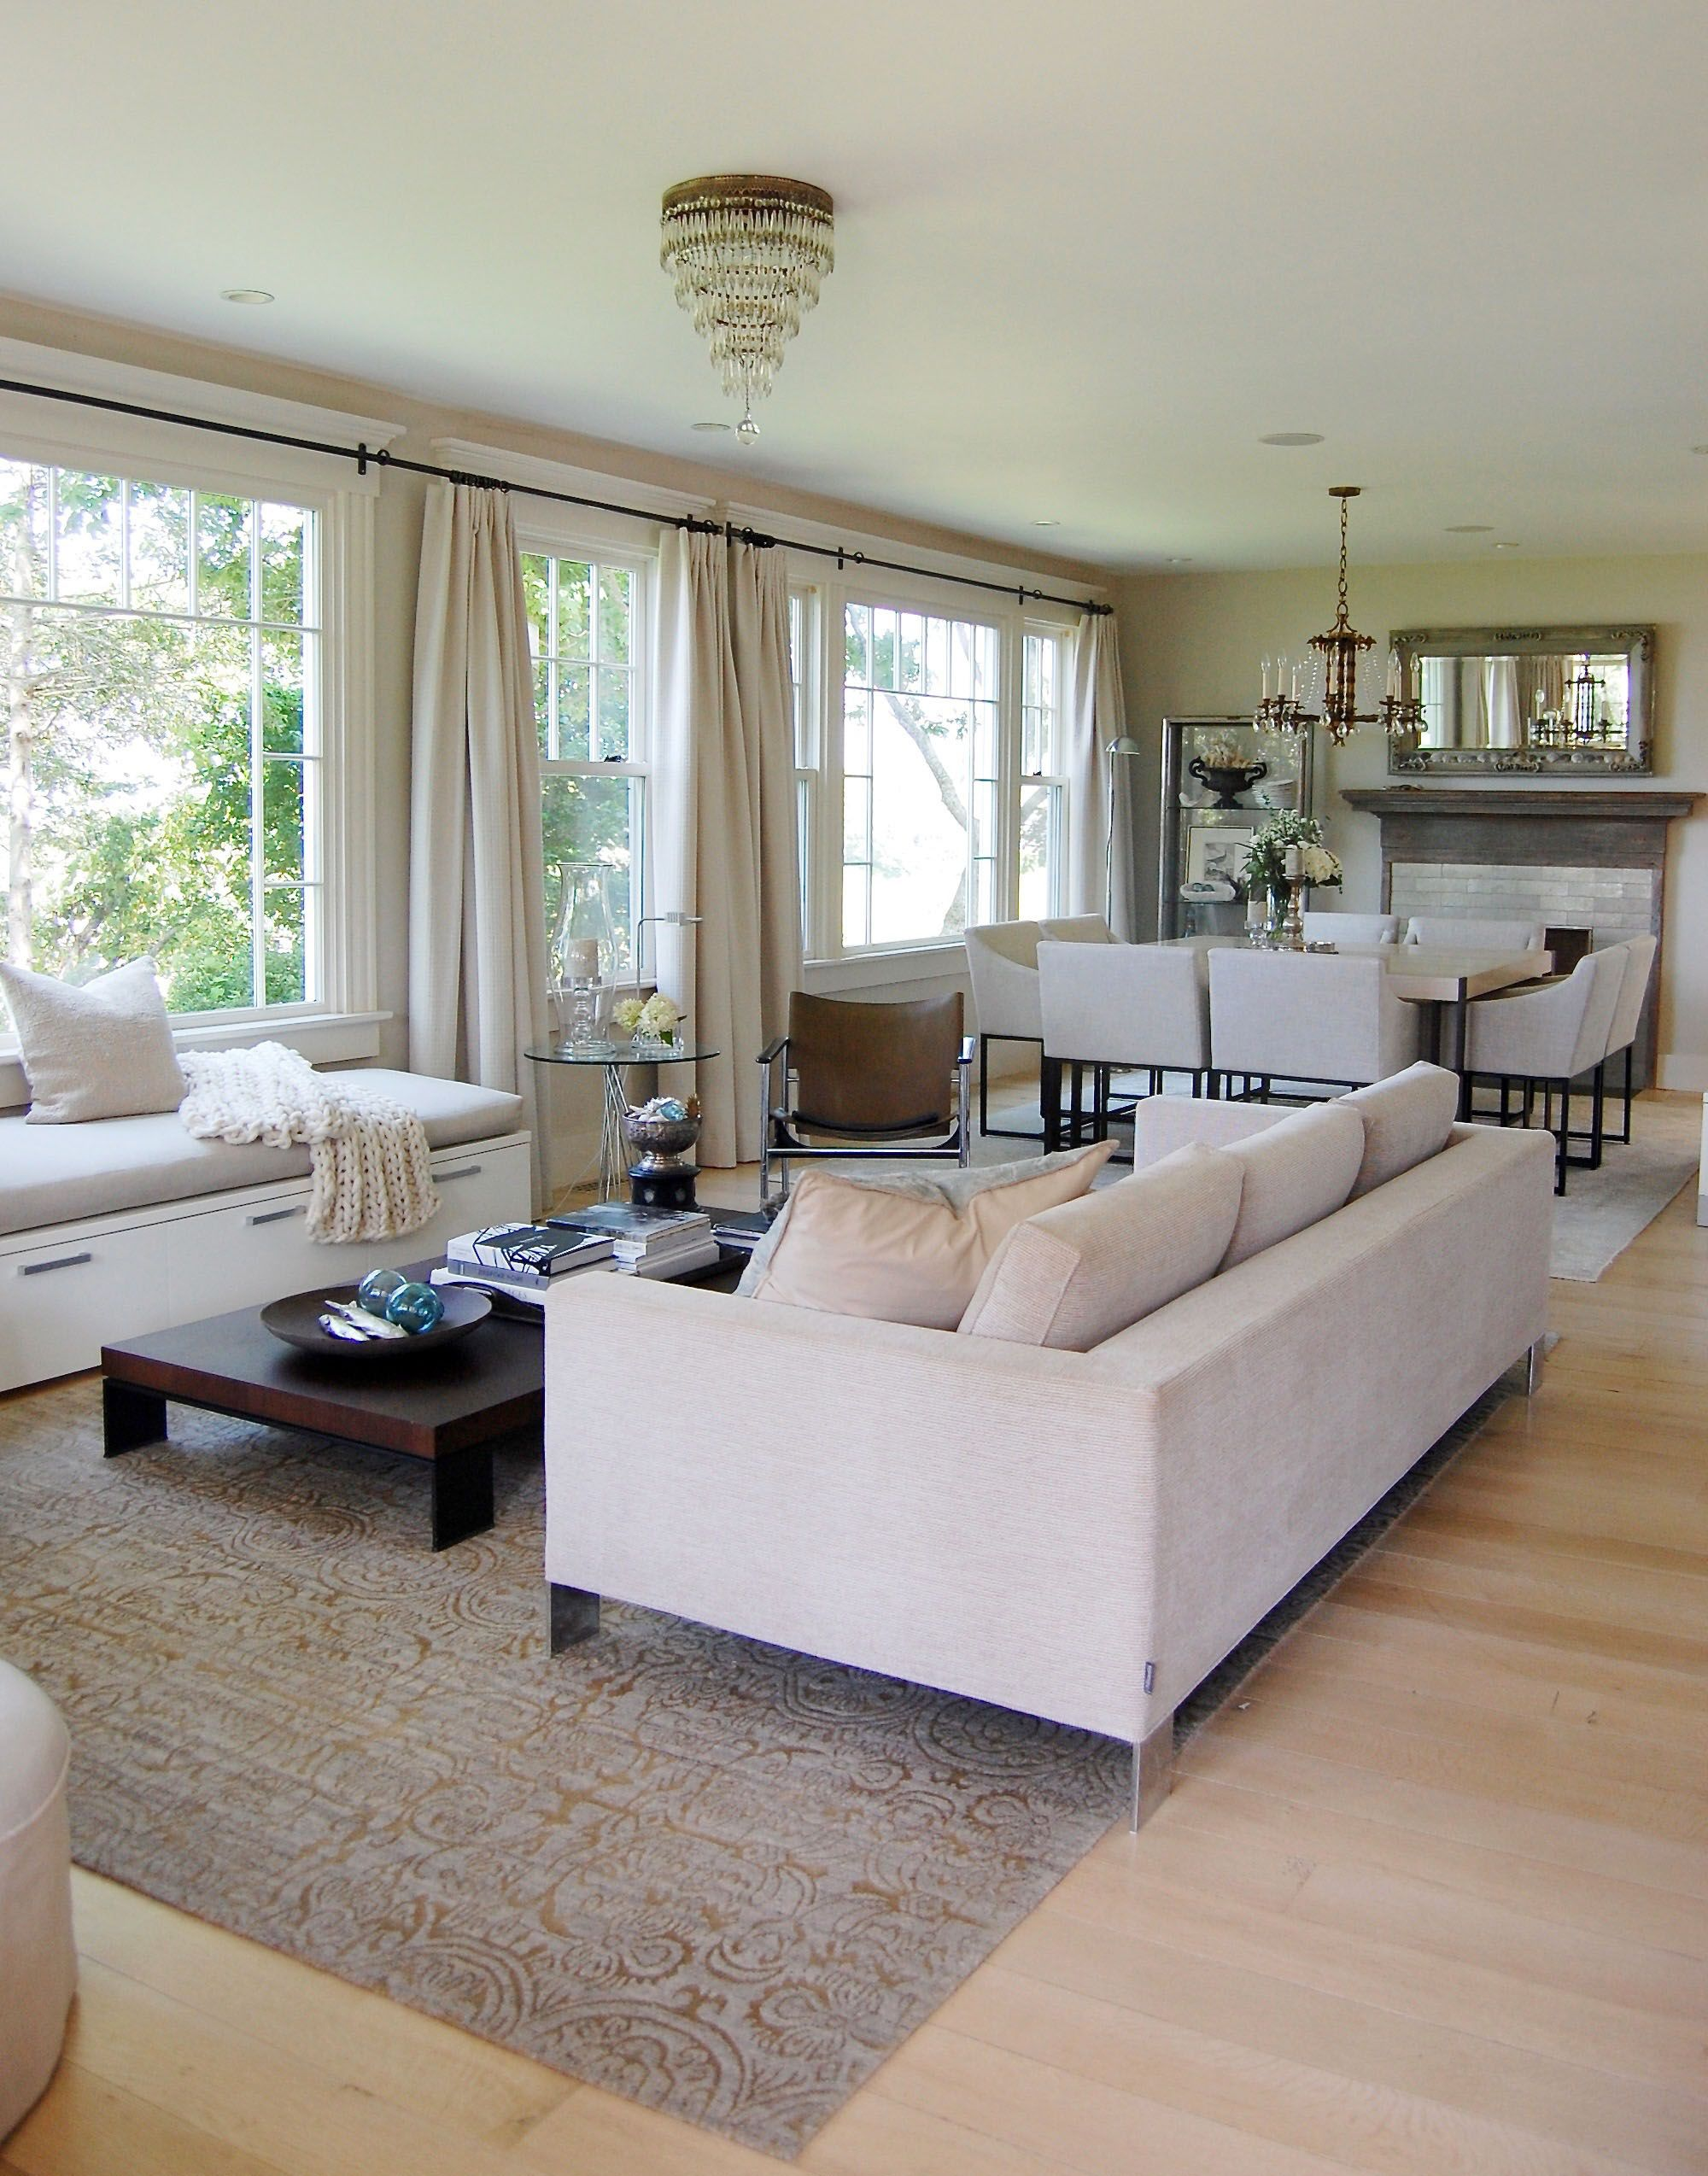 Home Tour Of A Cape Cod Beauty  Access To The Most Amazing Home Fair Contemporary Modern Living Room Decorating Design